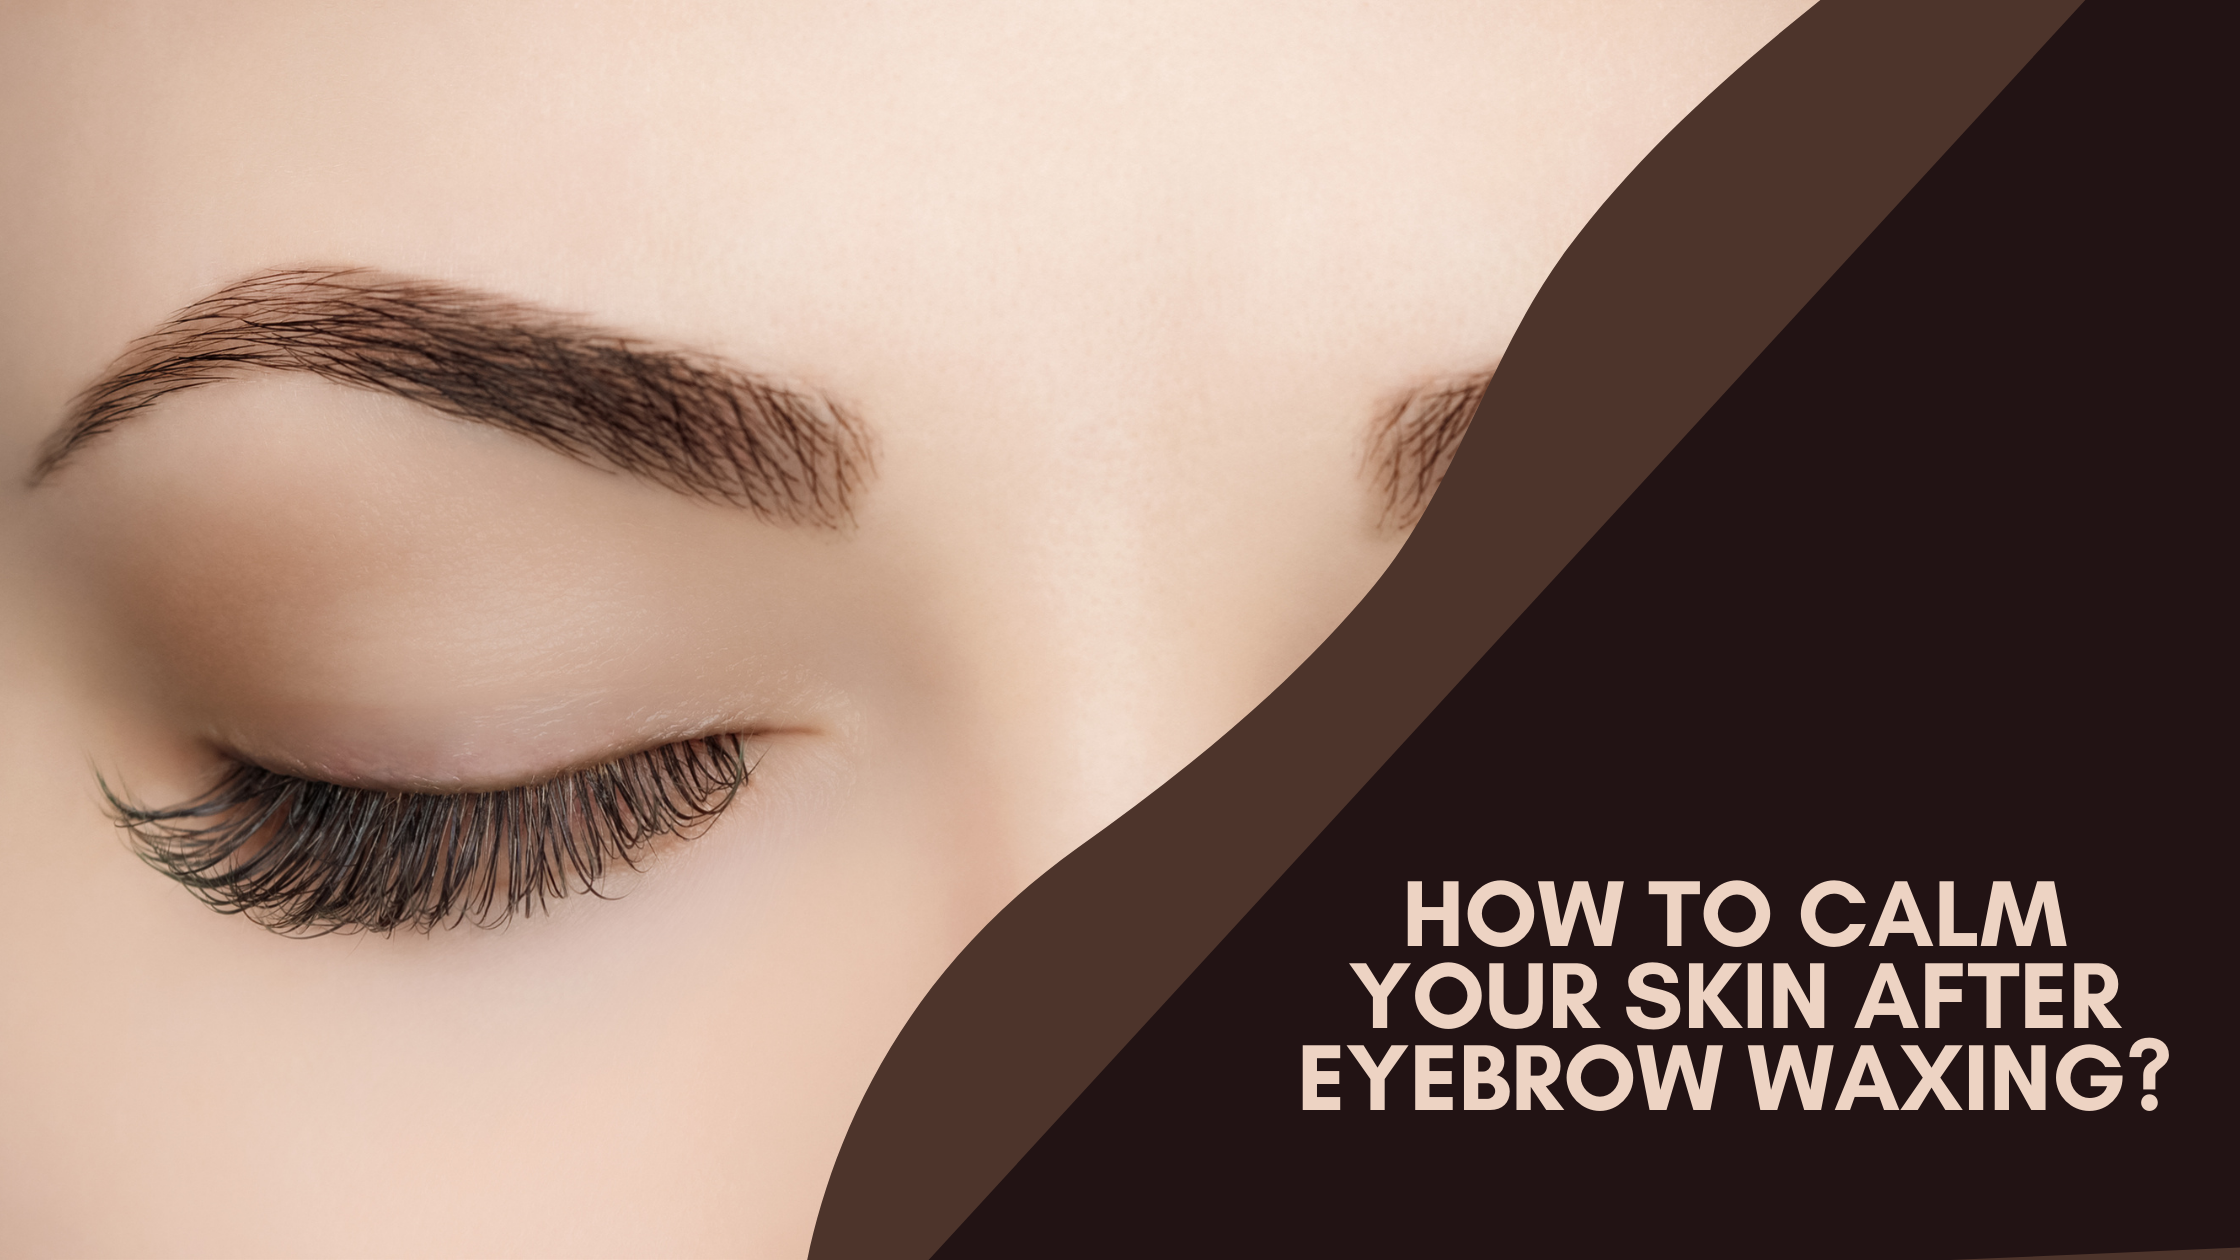 how to calm skin after eyebrow waxing